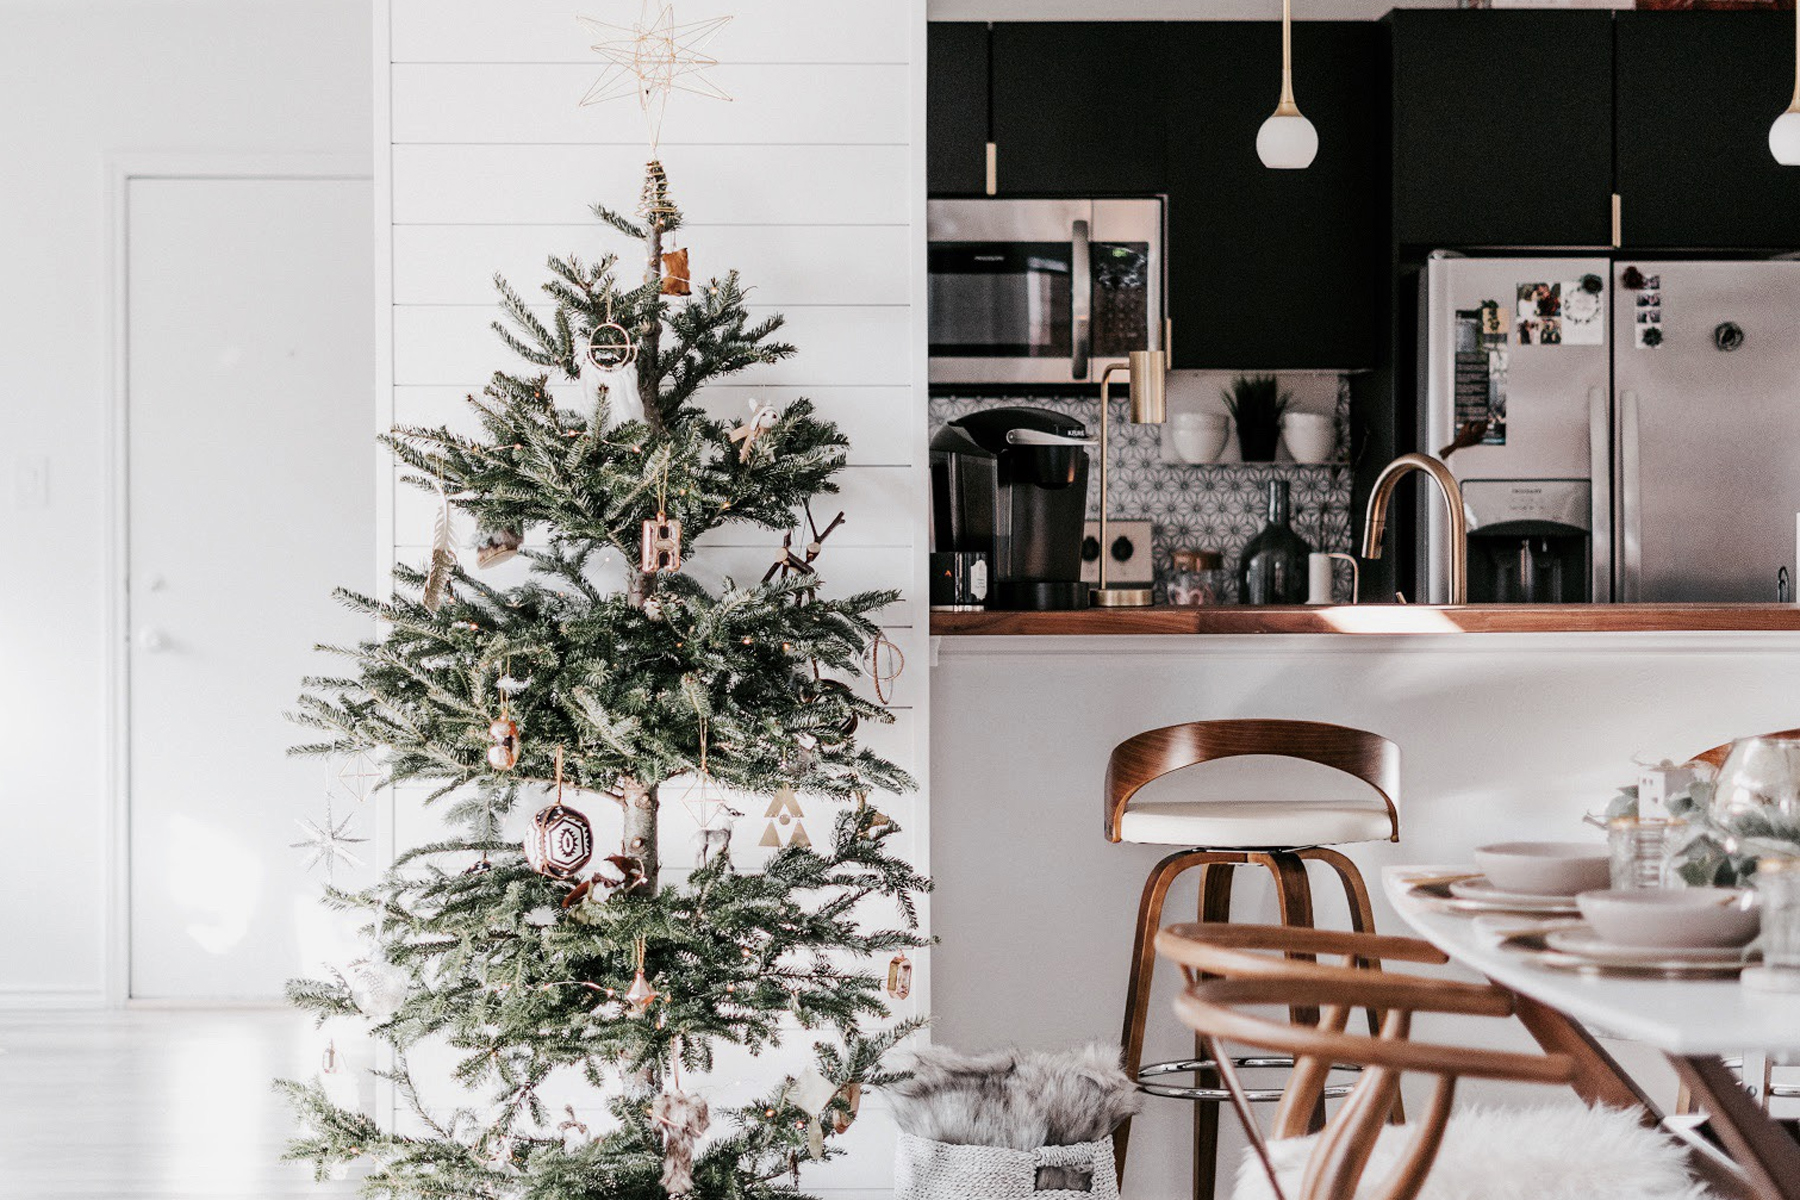 20 Christmas Decor Ideas For Small Spaces Apartment Decorating Ideas Apartment Therapy